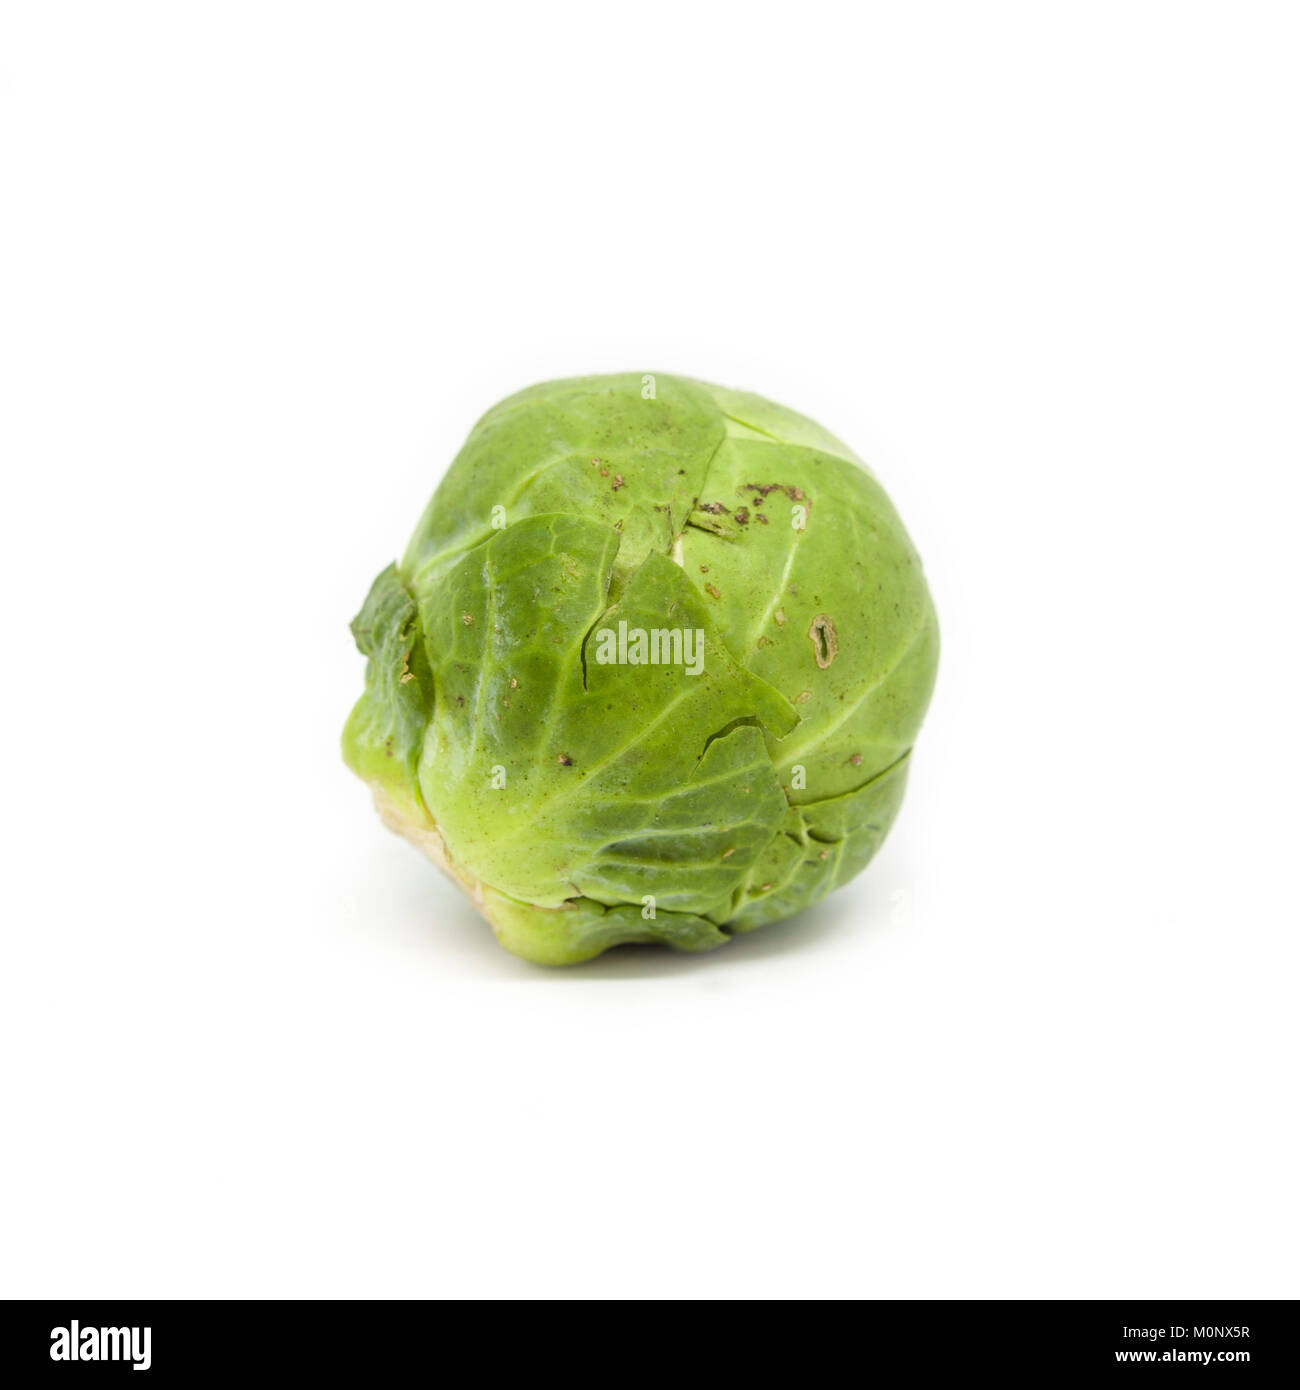 A Brussels Sprout isolated on a white background. - Stock Image